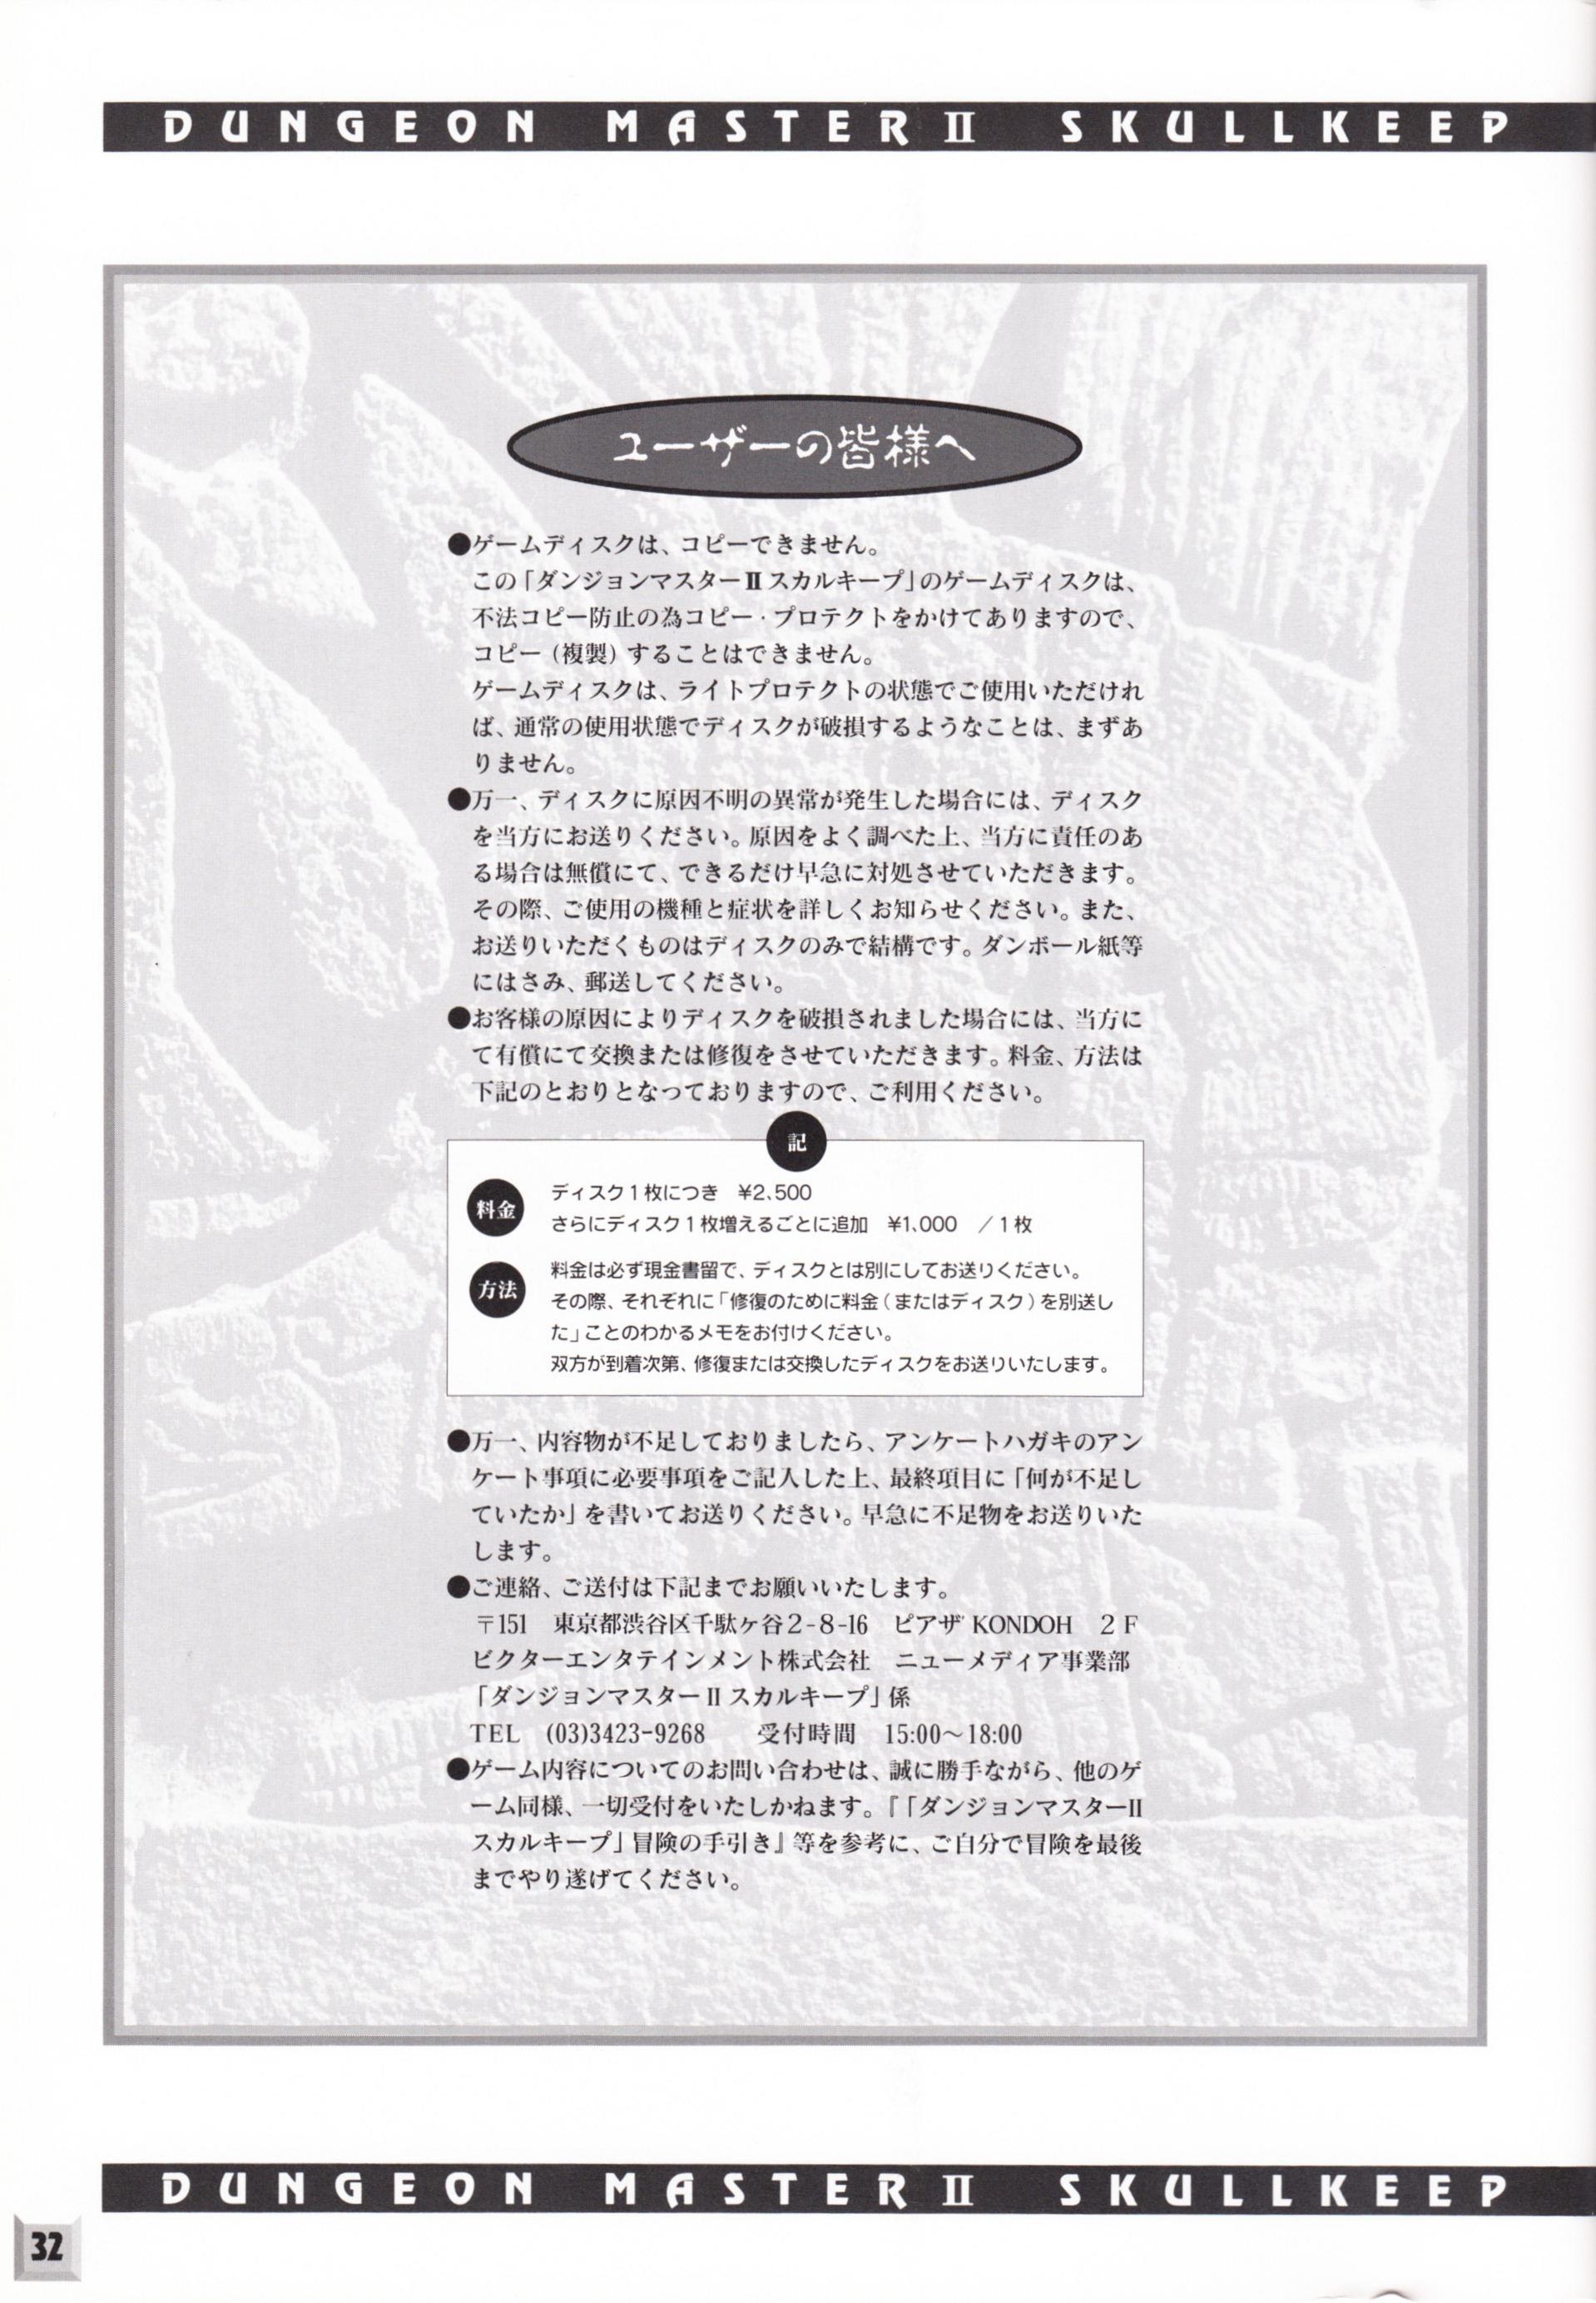 Game - Dungeon Master II - JP - PC-9801 - 3.5-inch - An Operation Manual - Page 034 - Scan